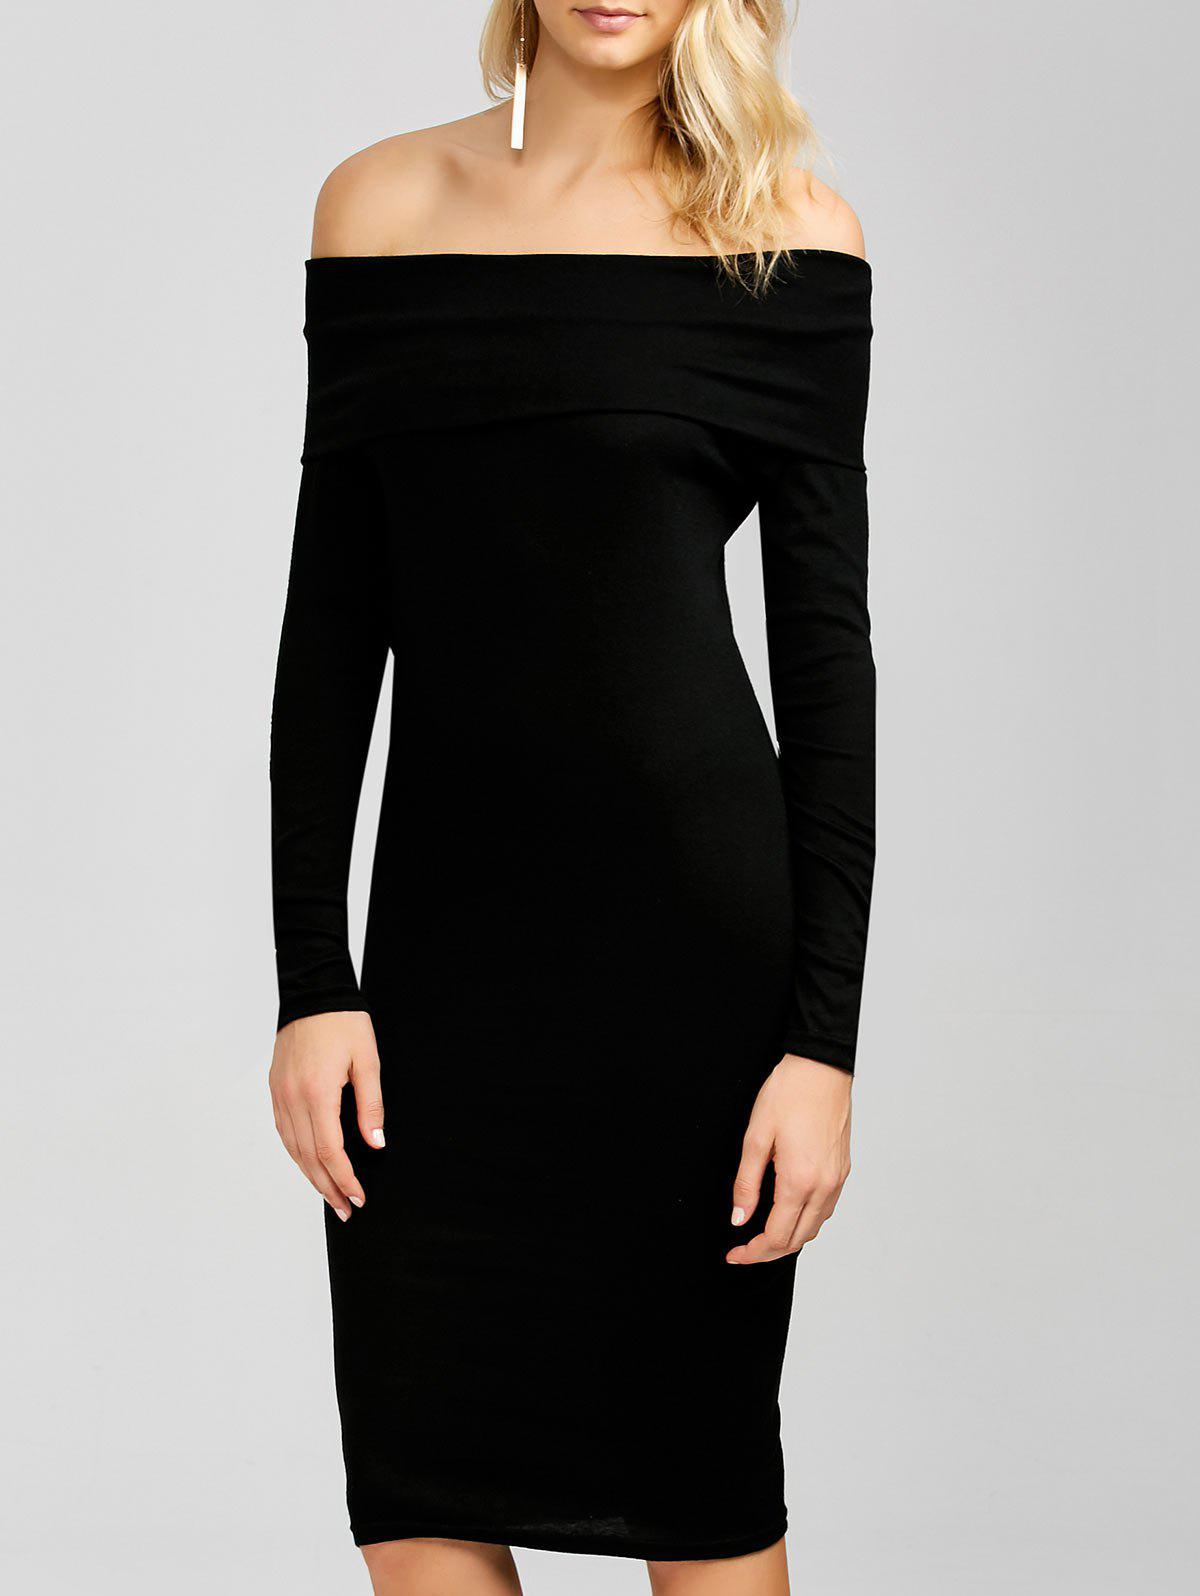 New Off The Shoulder Long Sleeve Bodycon Dress